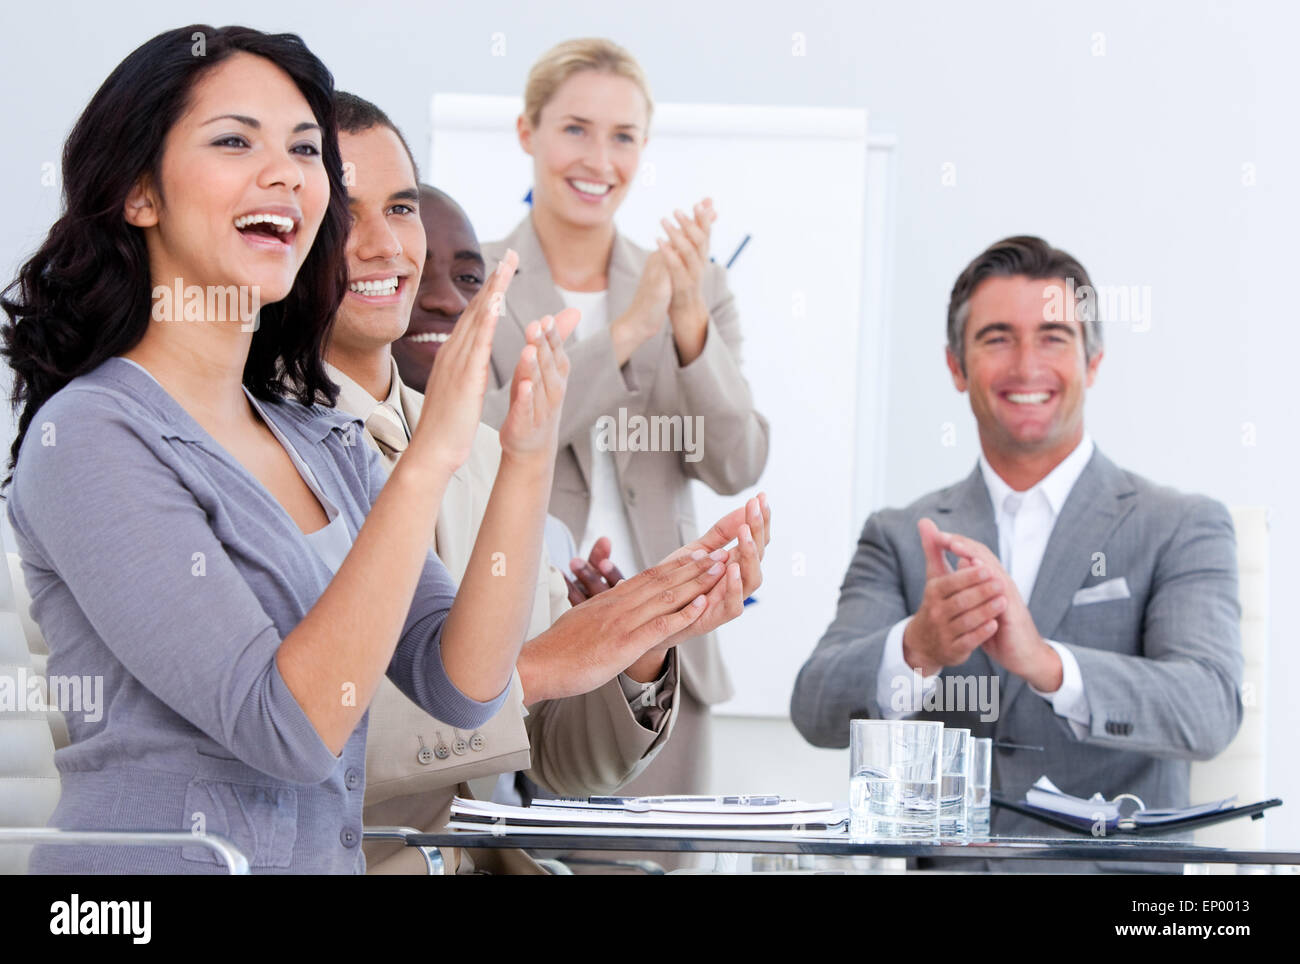 Image result for People applauding, images